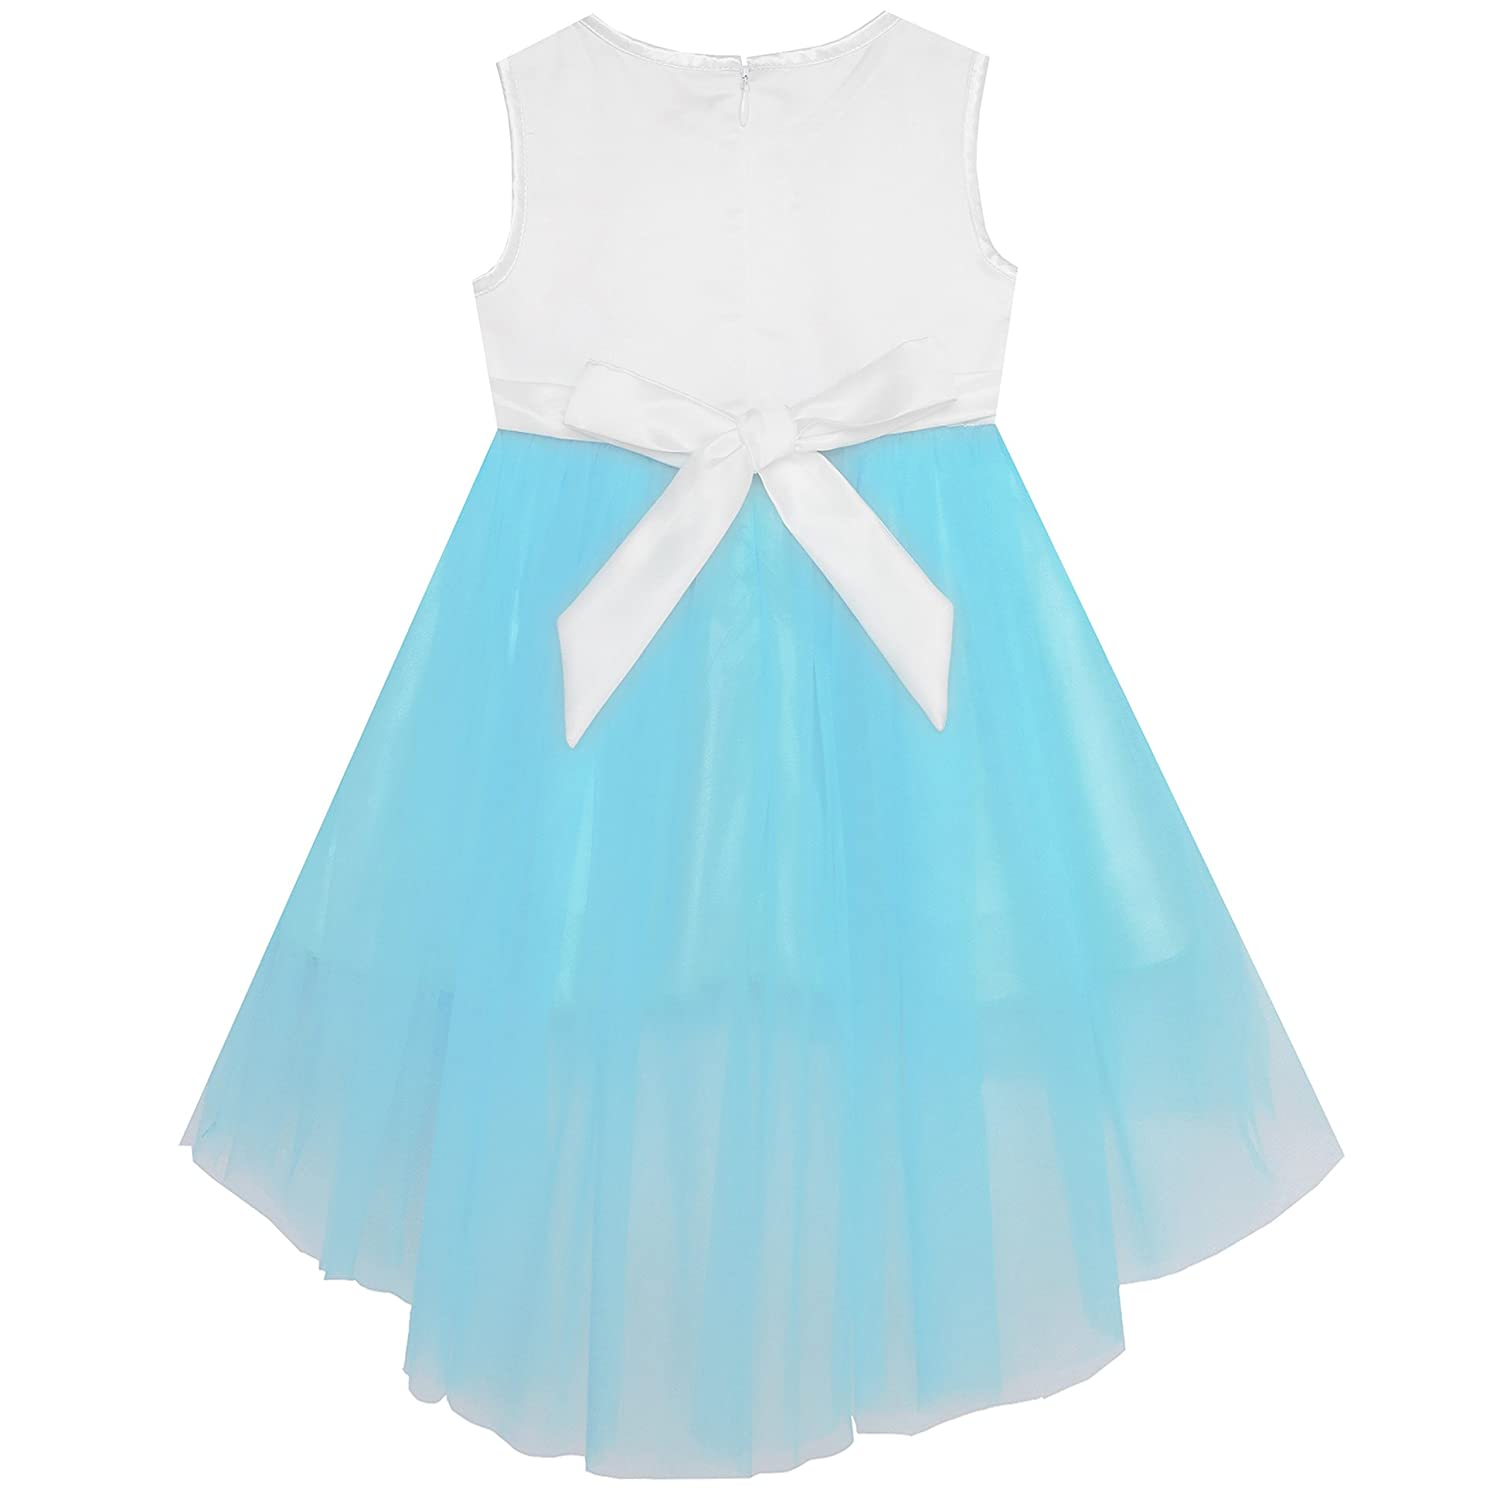 ff4881a83 Amazon.com  Sunny Fashion Baby Girls Dress Sparkling Lace Sequin ...